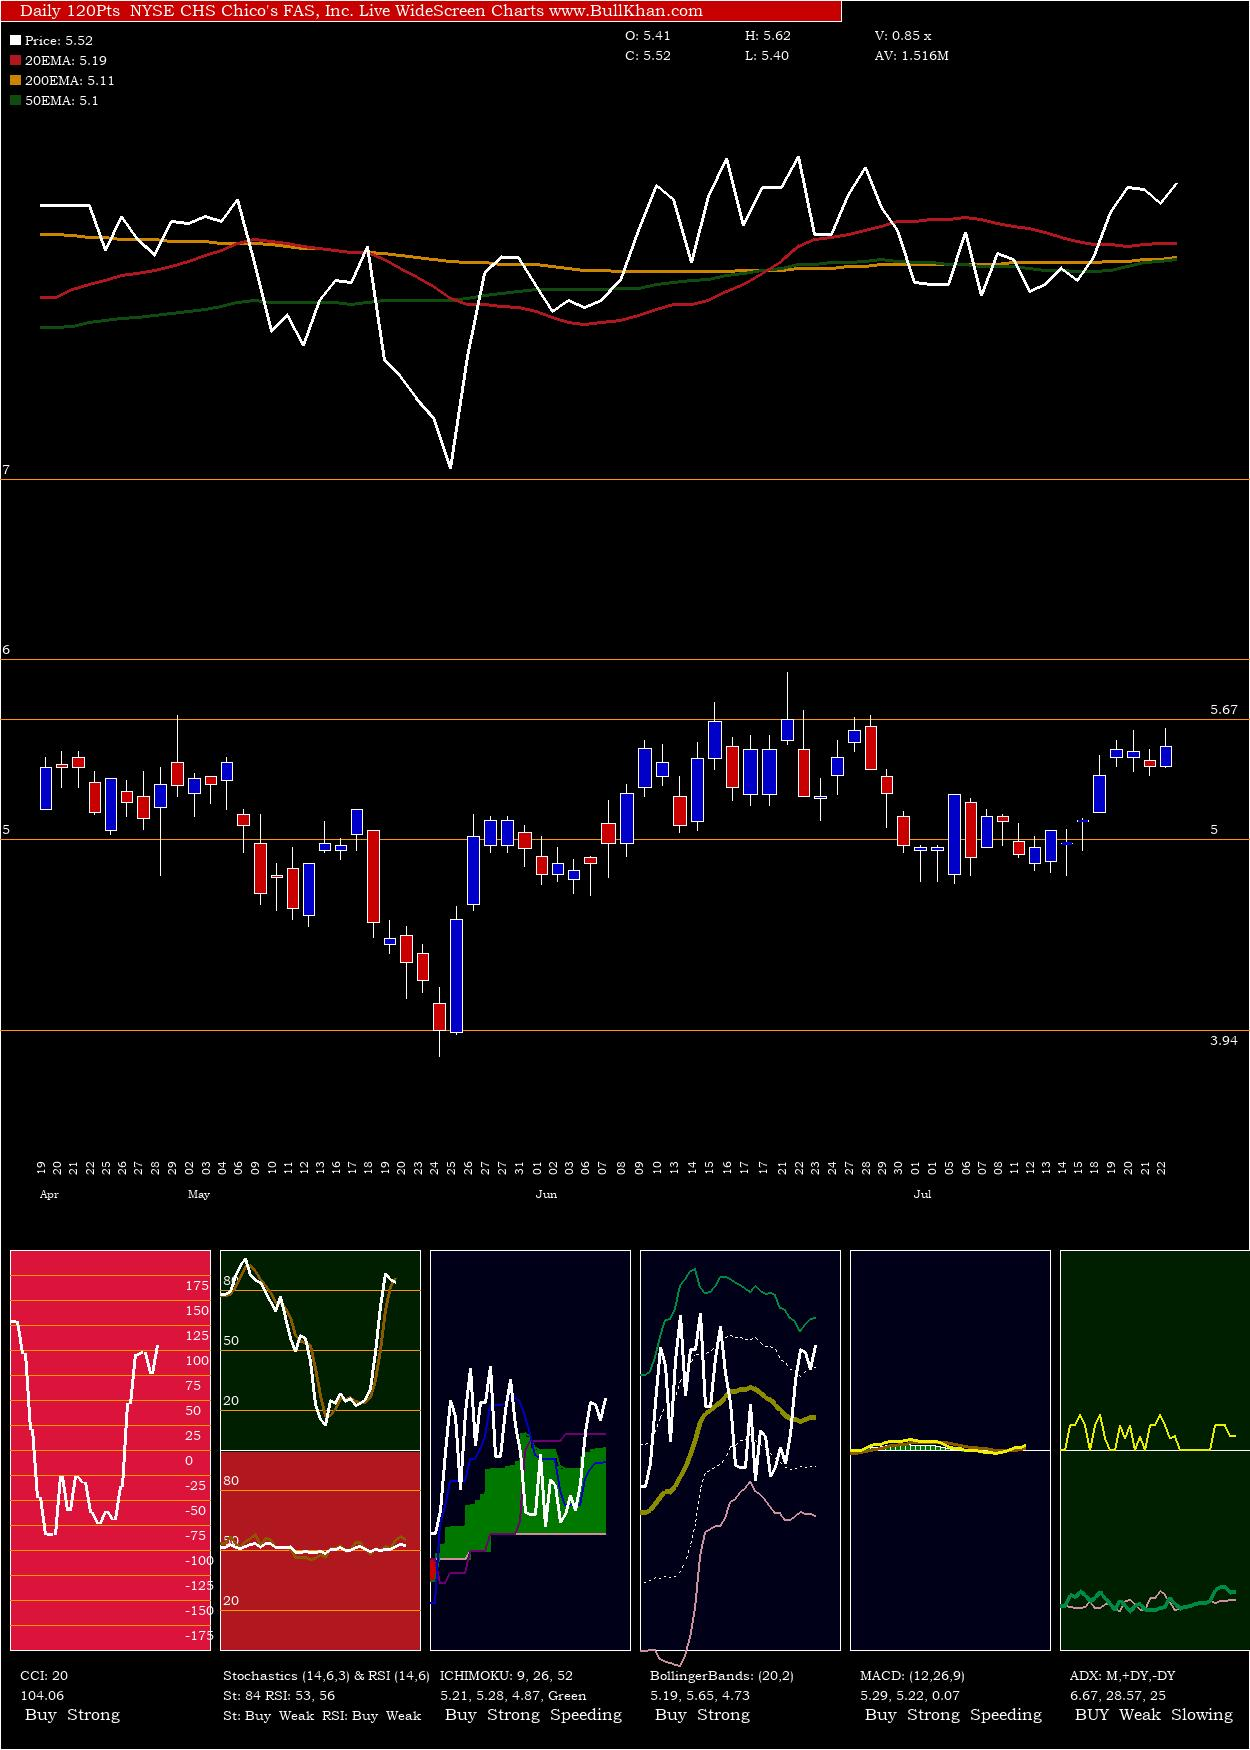 Chico's FAS, Inc. charts and indicators